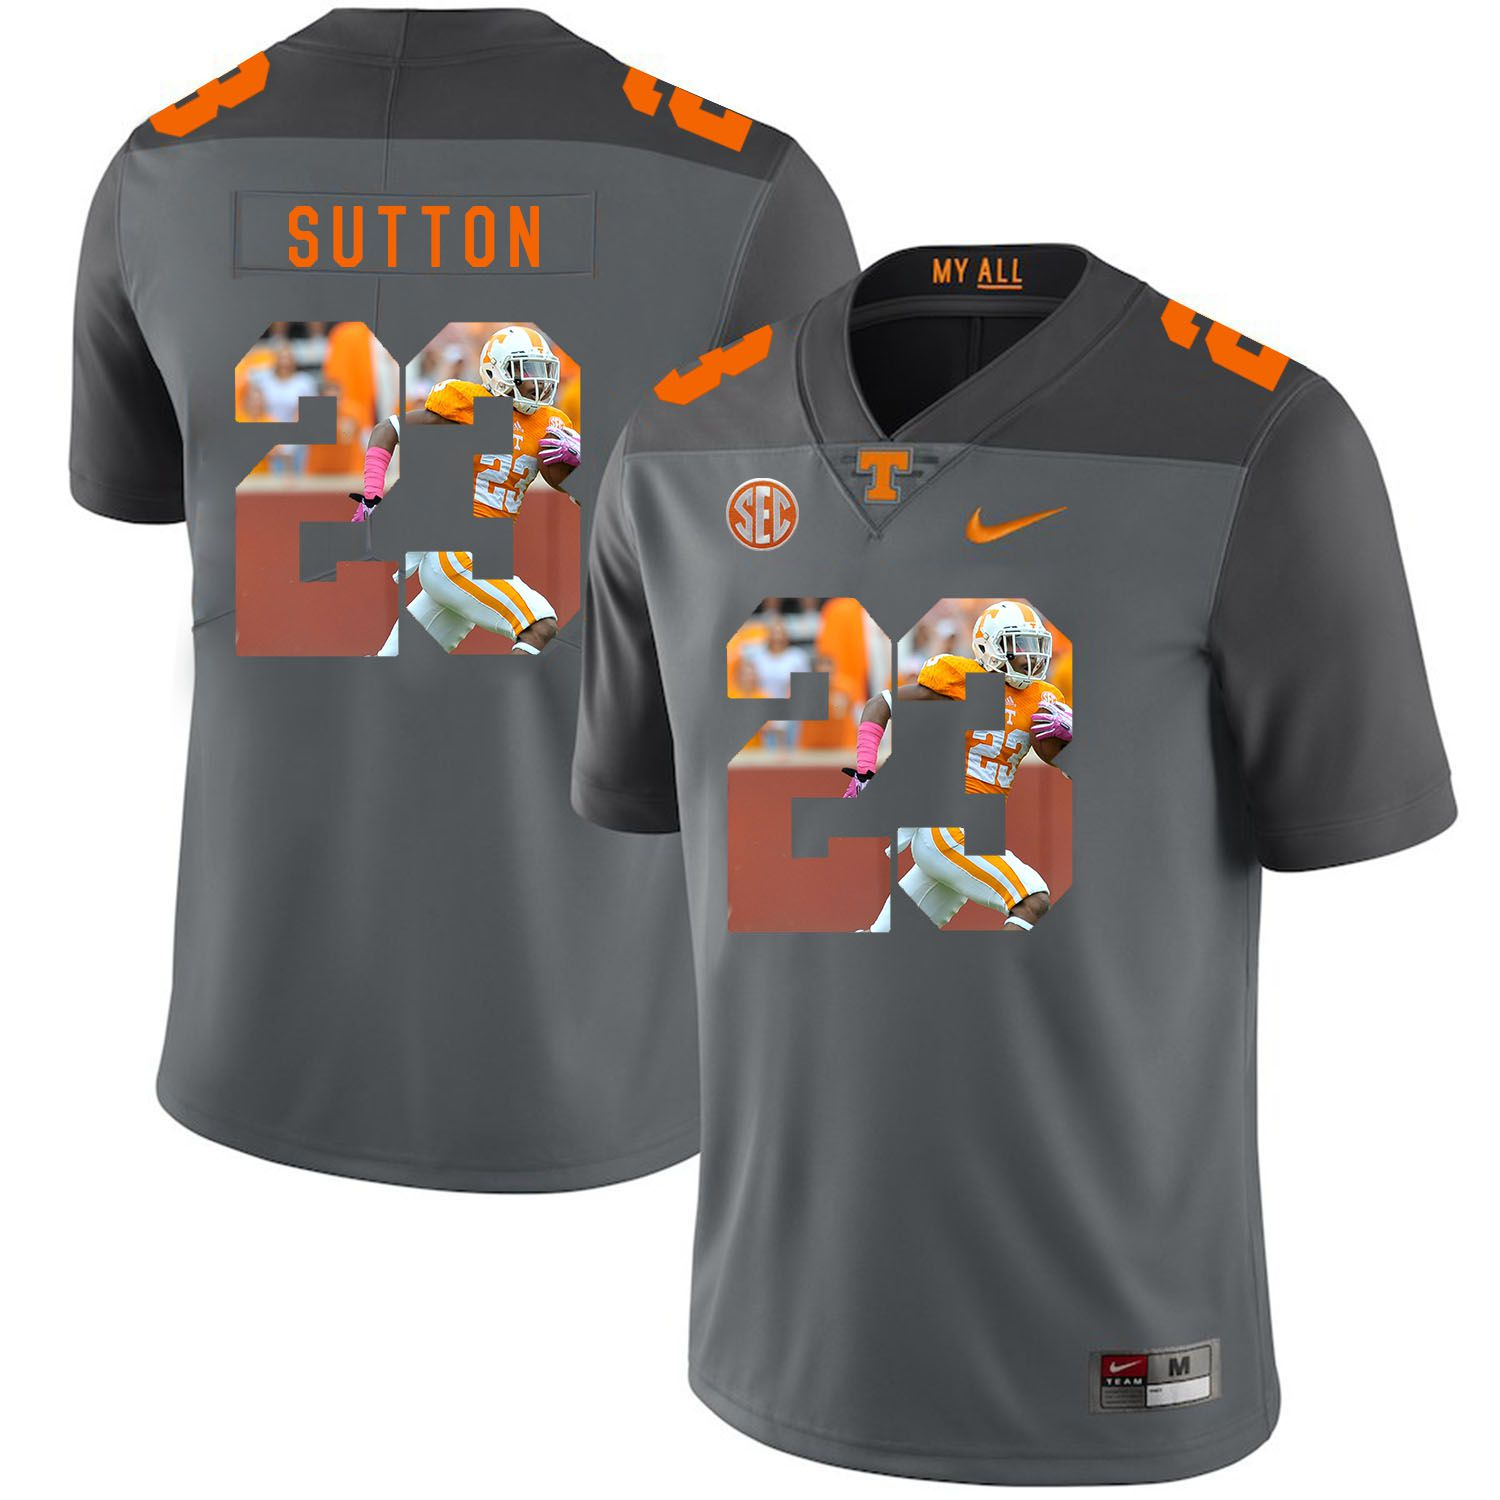 Men Tennessee Volunteers 23 Sutton Grey Fashion Edition Customized NCAA Jerseys